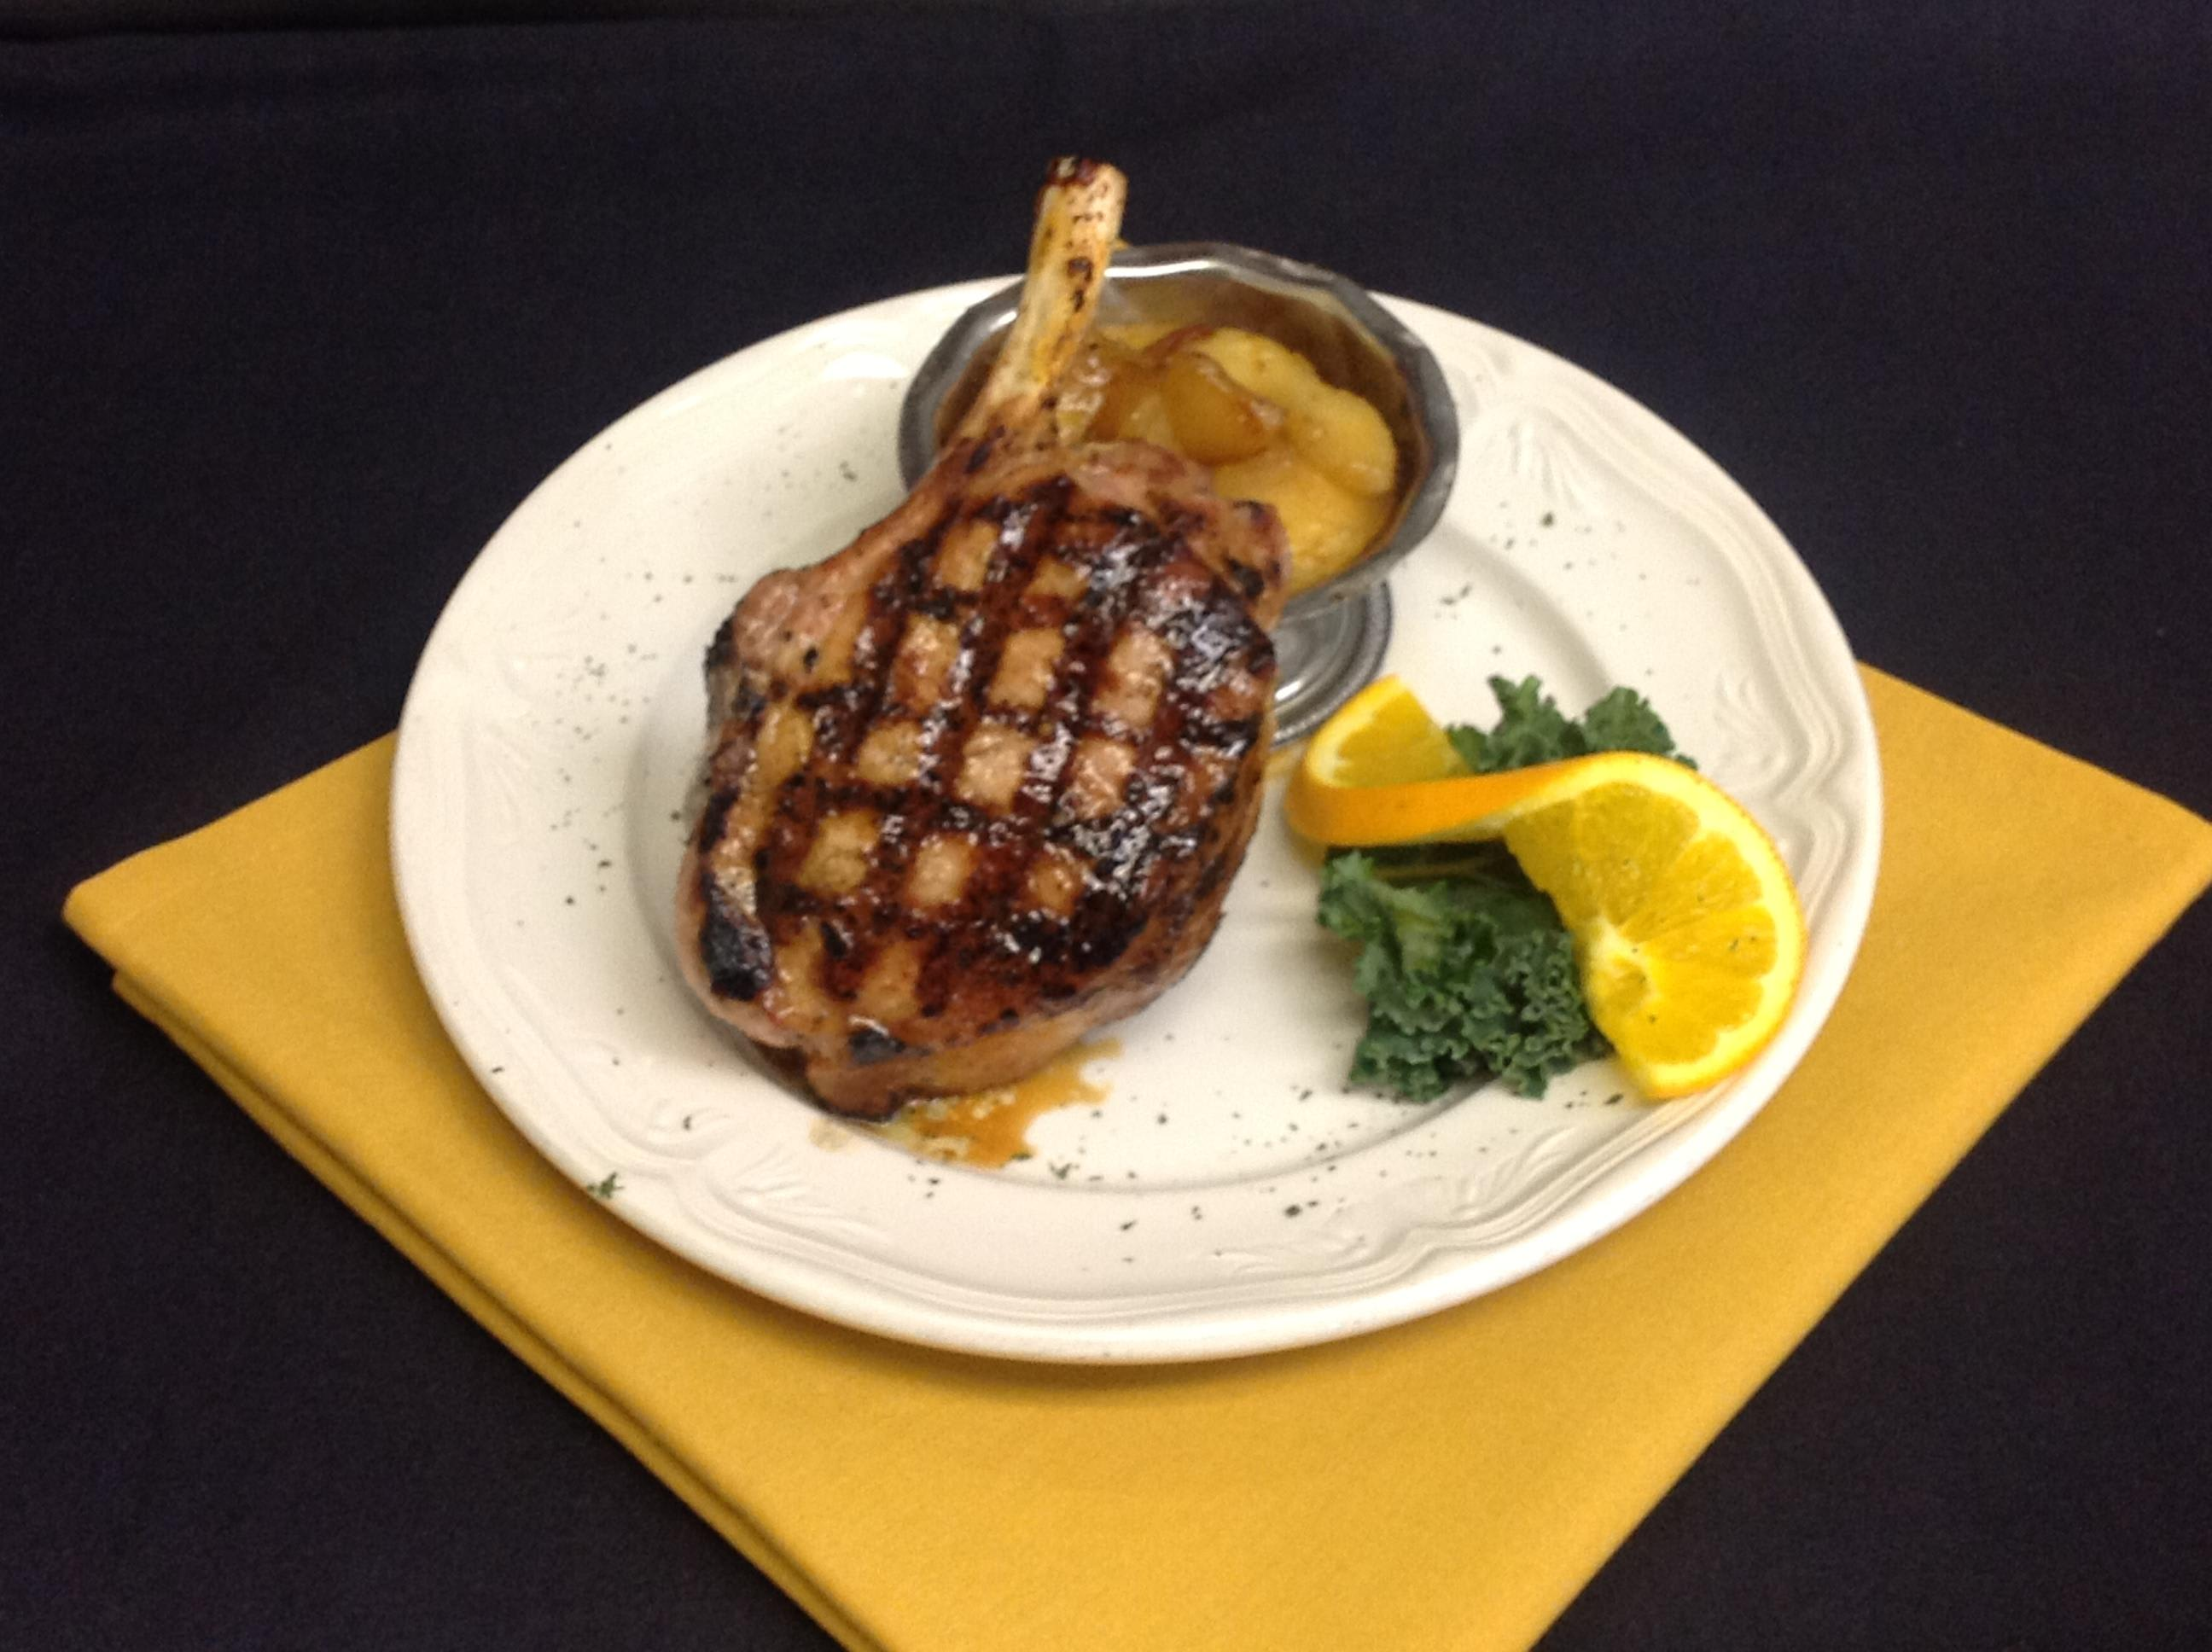 10oz Pork Chop at Palmers Steakhouse